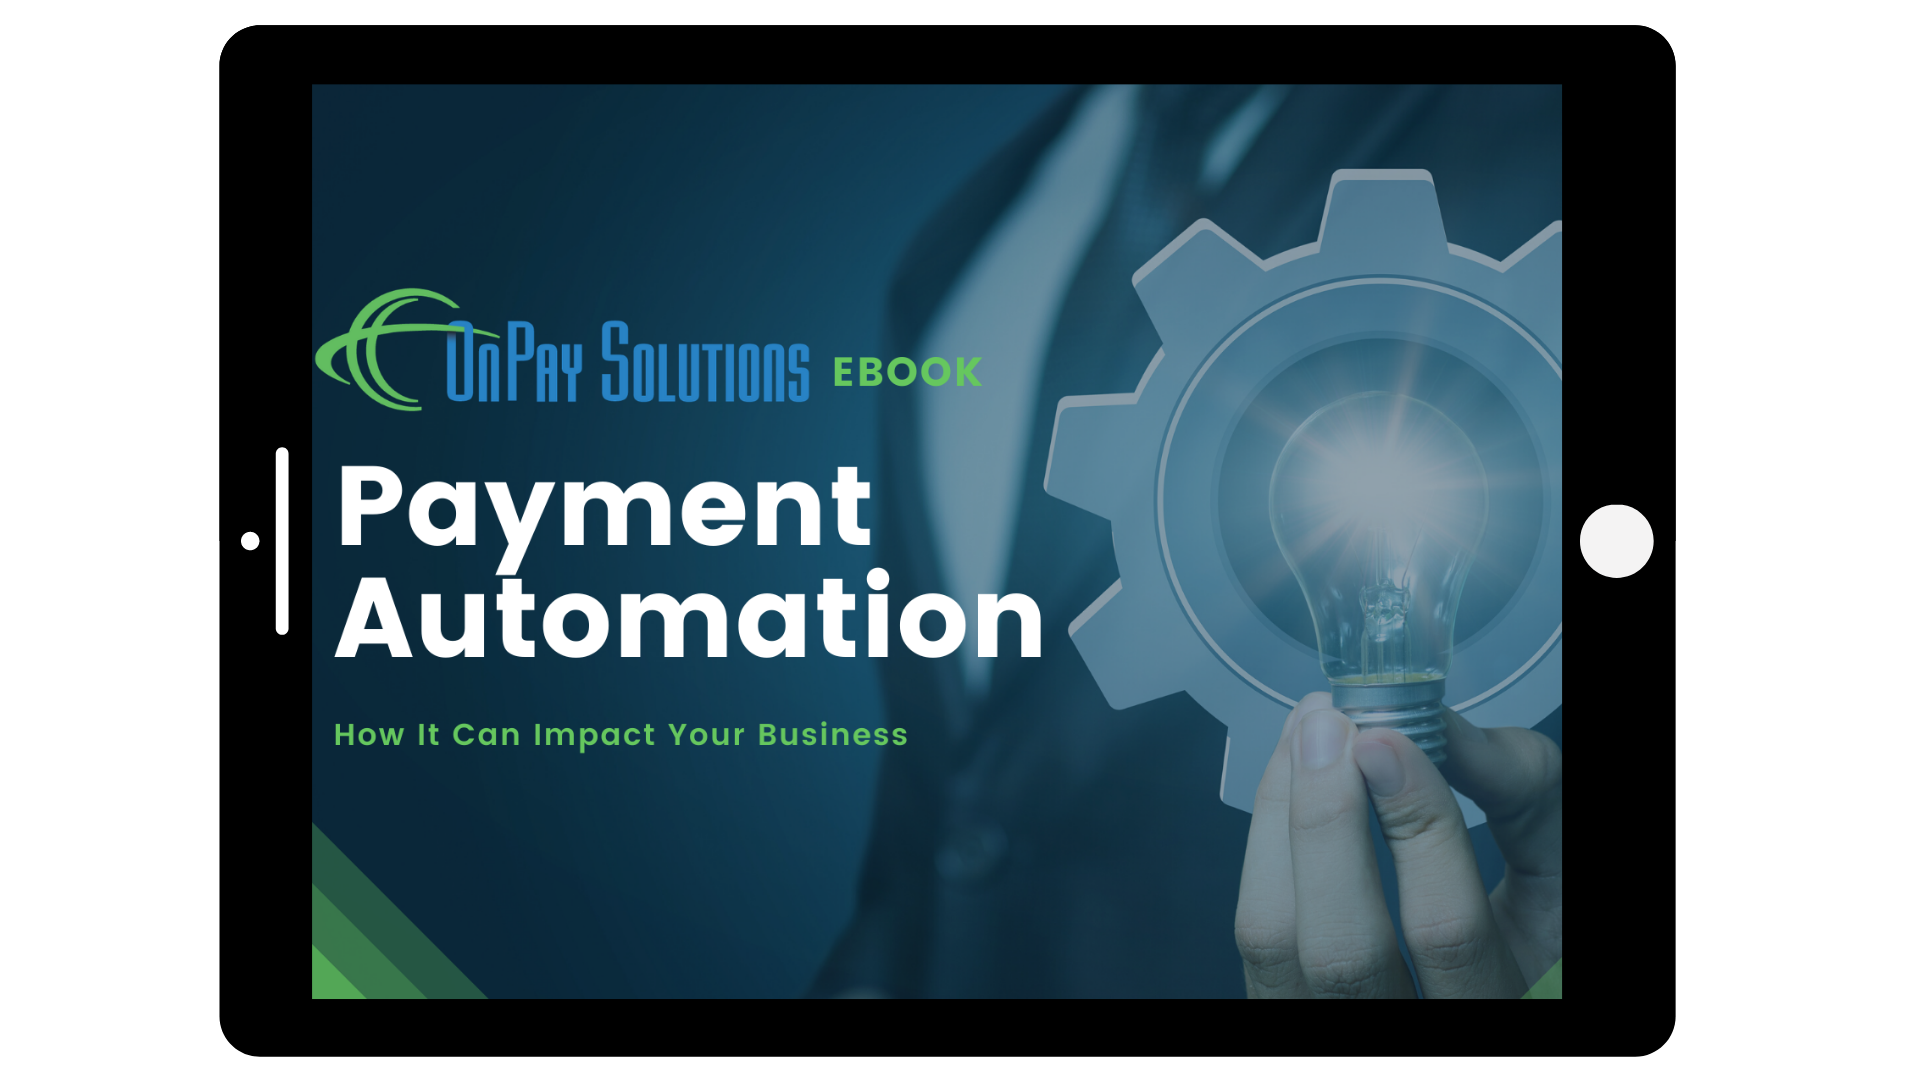 Payments Automation - Ebook Title Card - Tablet